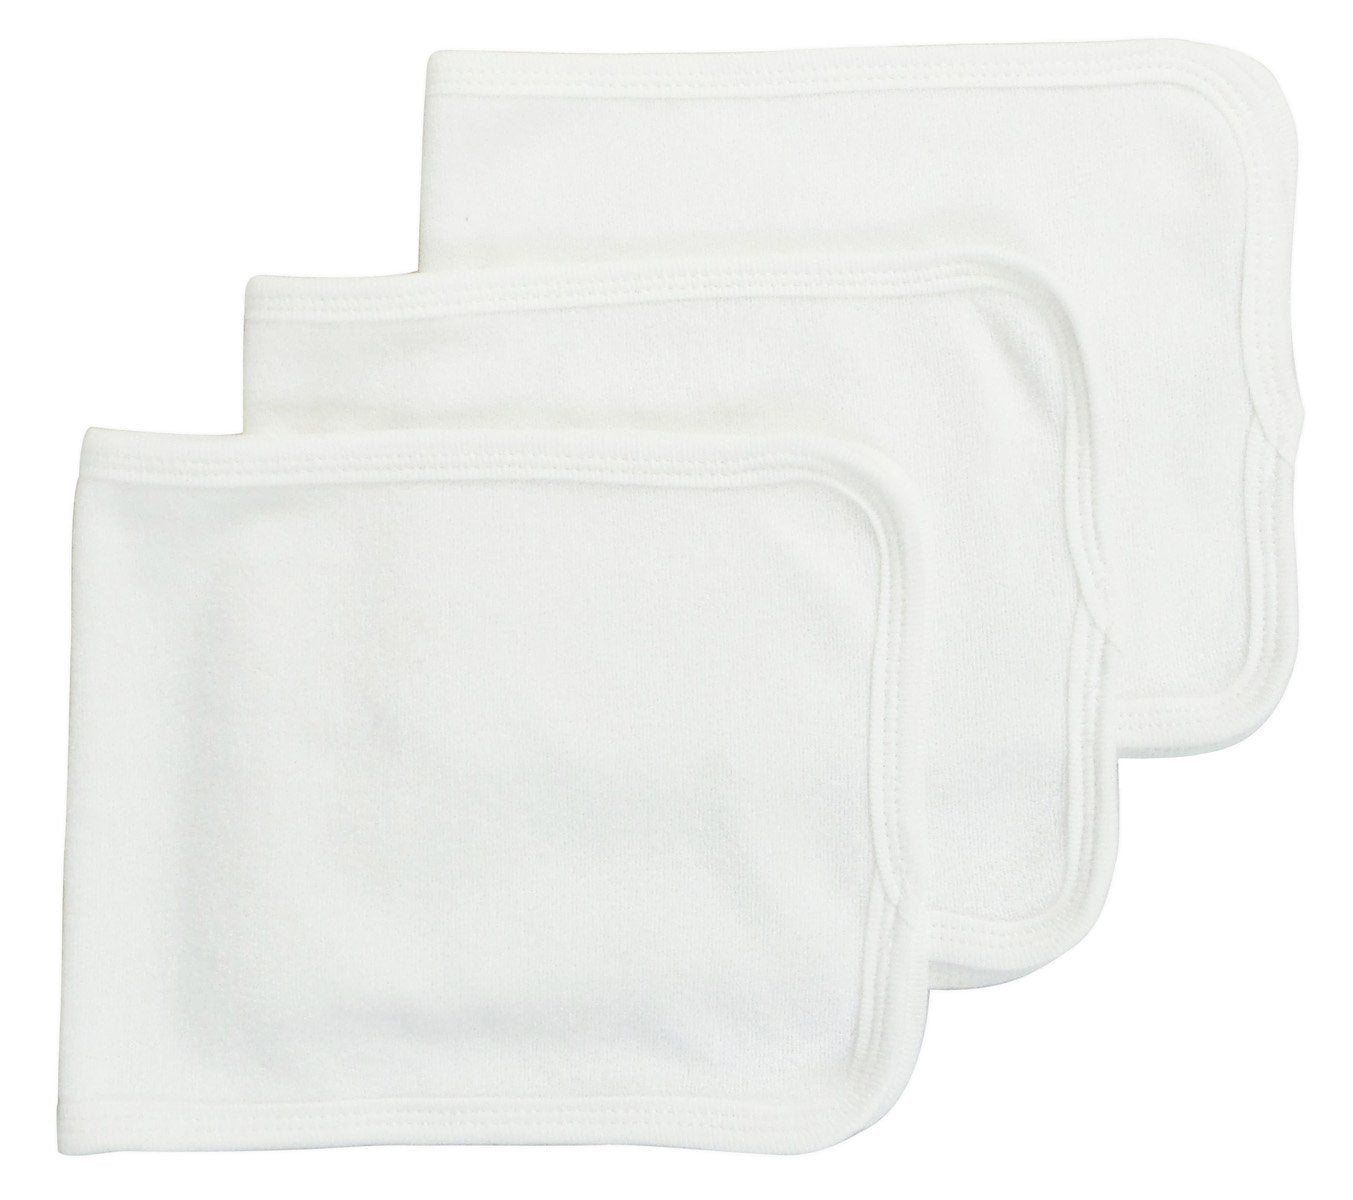 Bambini Baby Burpcloth With White Trim (Pack of 3) - Baby World Inc